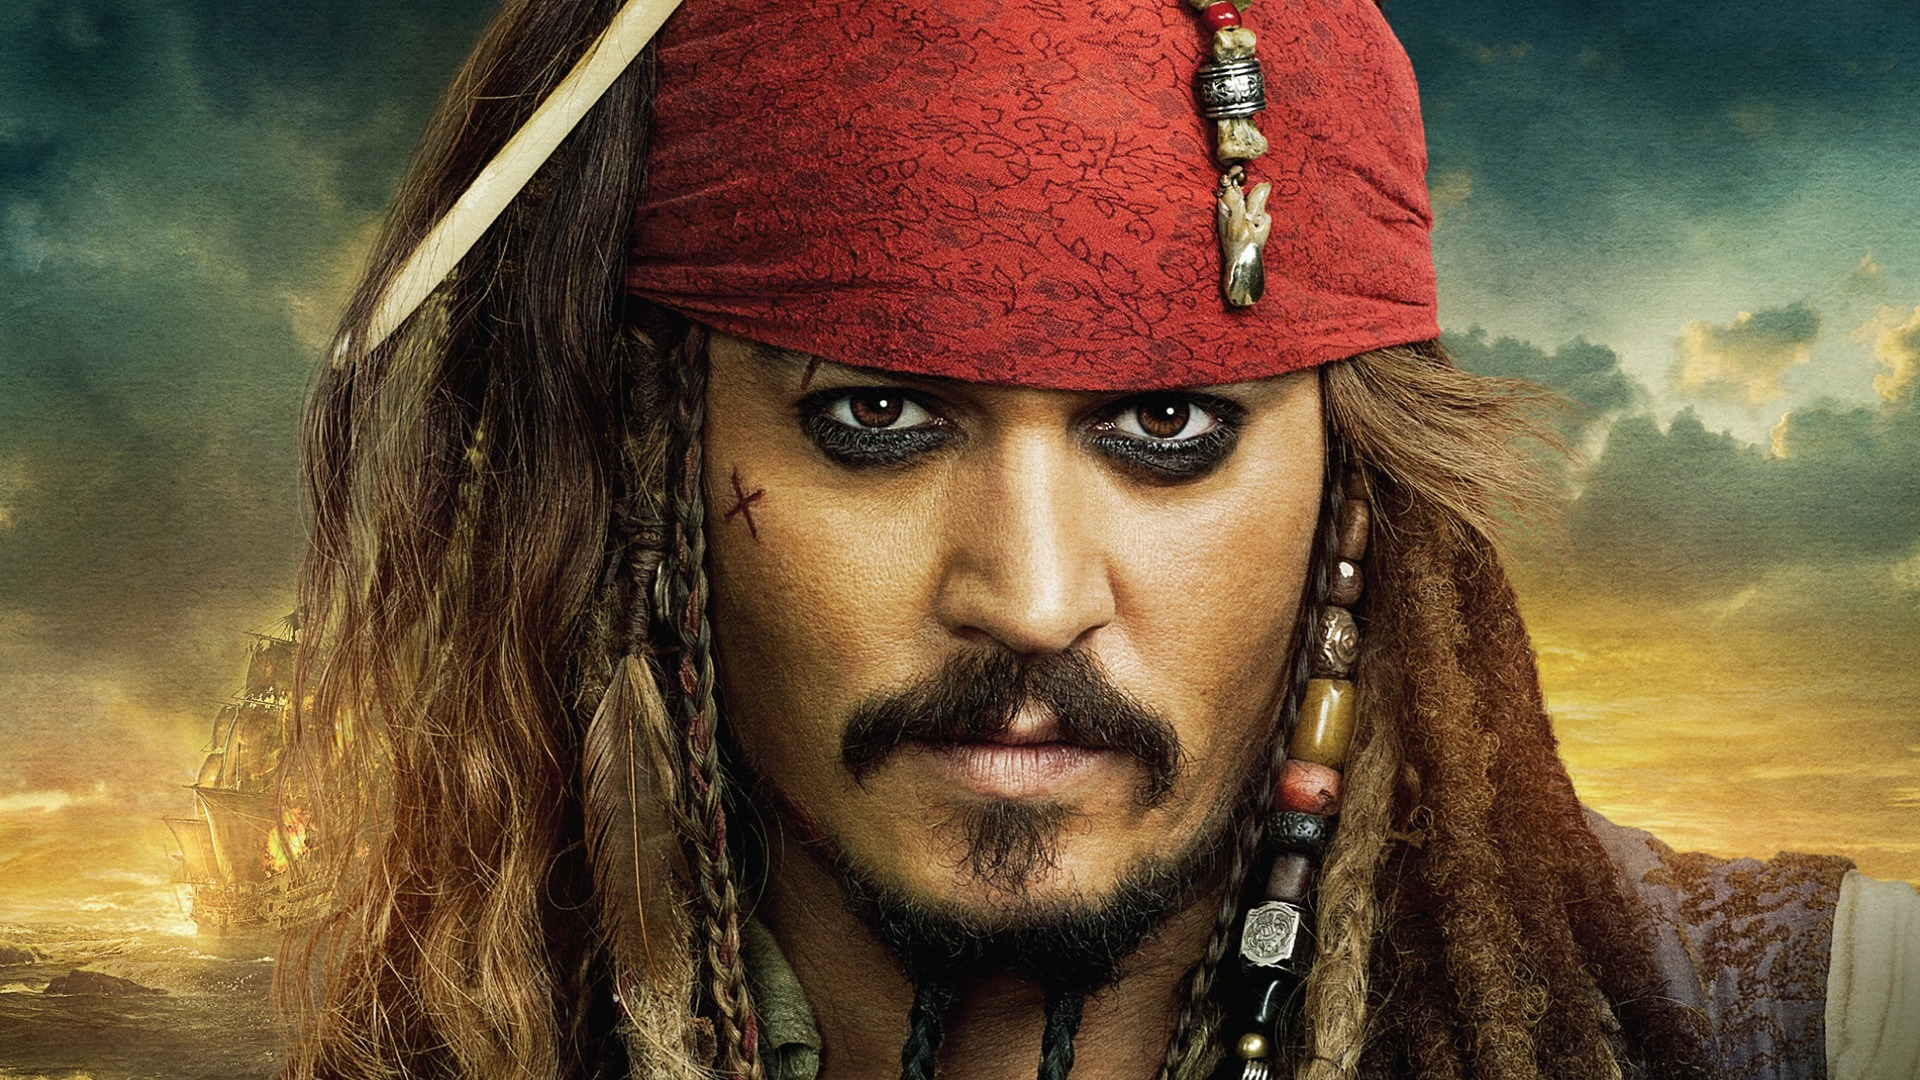 Pirates Images Captain Jack Sparrow HD Wallpaper And